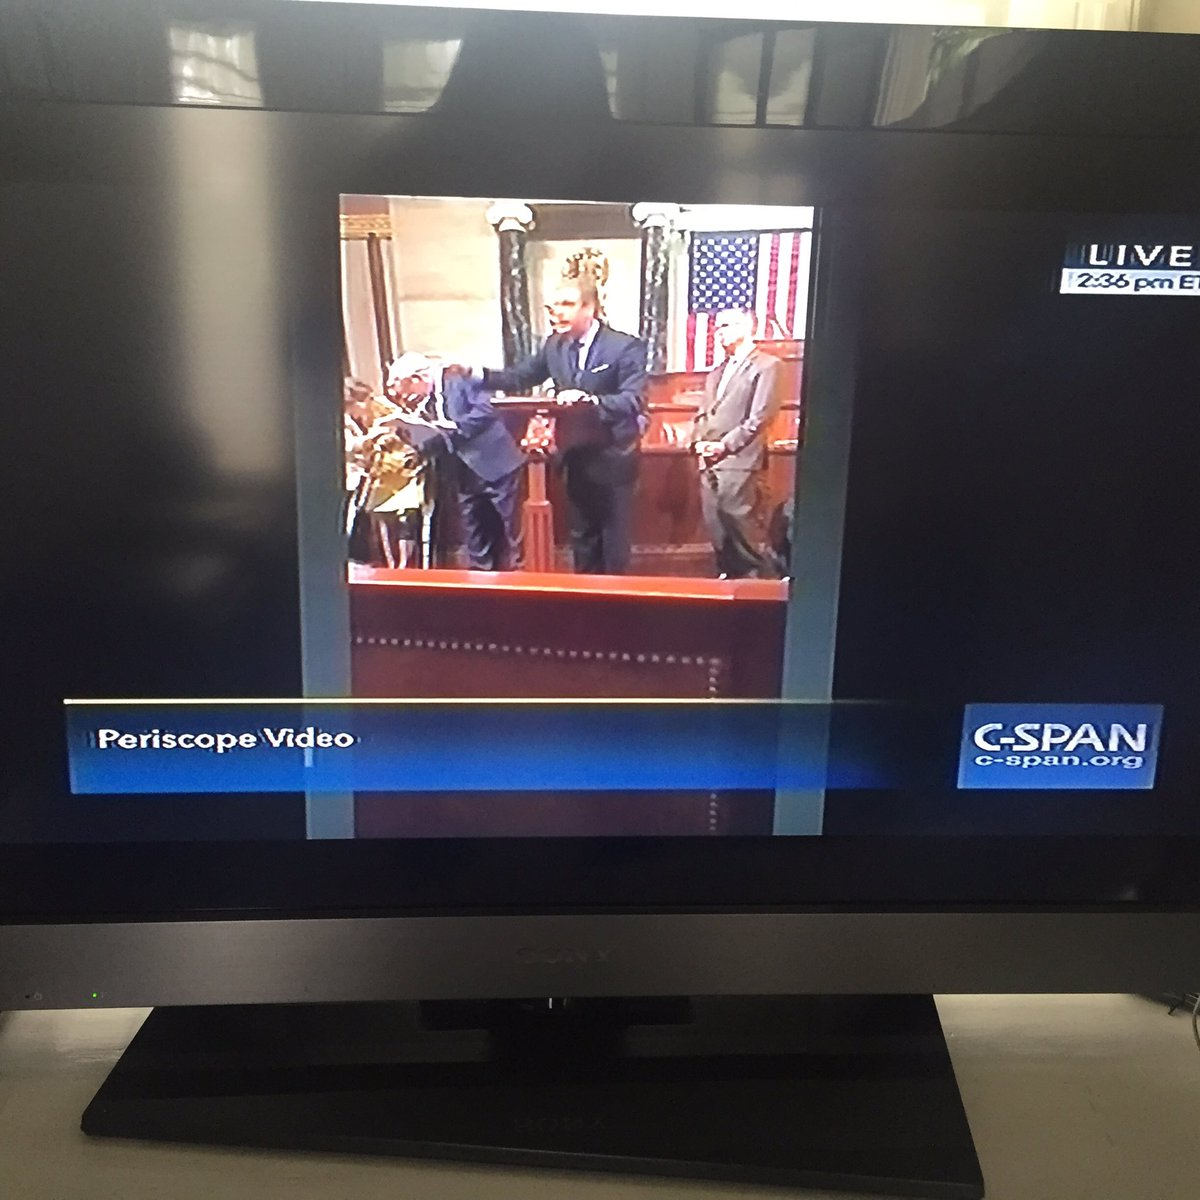 Wow. @cspan now showing Periscope videos from House since @SpeakerRyan turned off cameras #NoBillNoBreak https://t.co/LxlywC4a1v